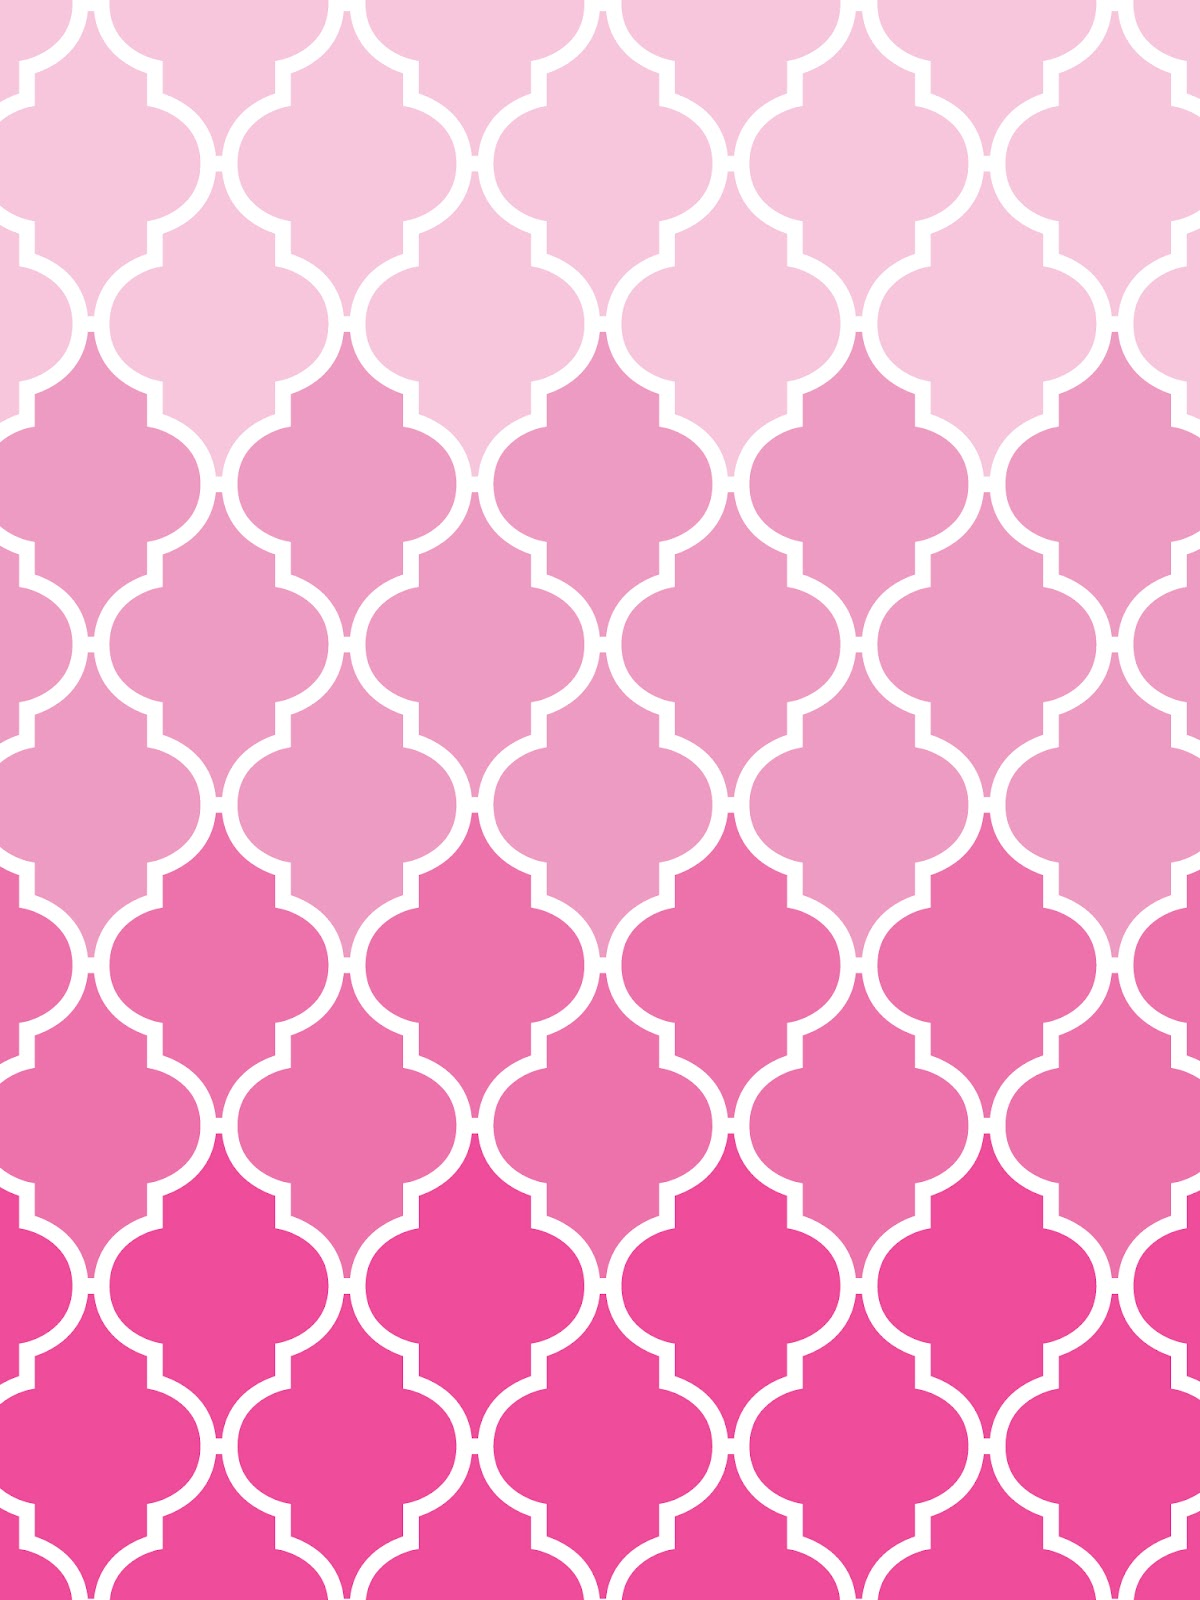 wallpaper pattern pink - photo #17